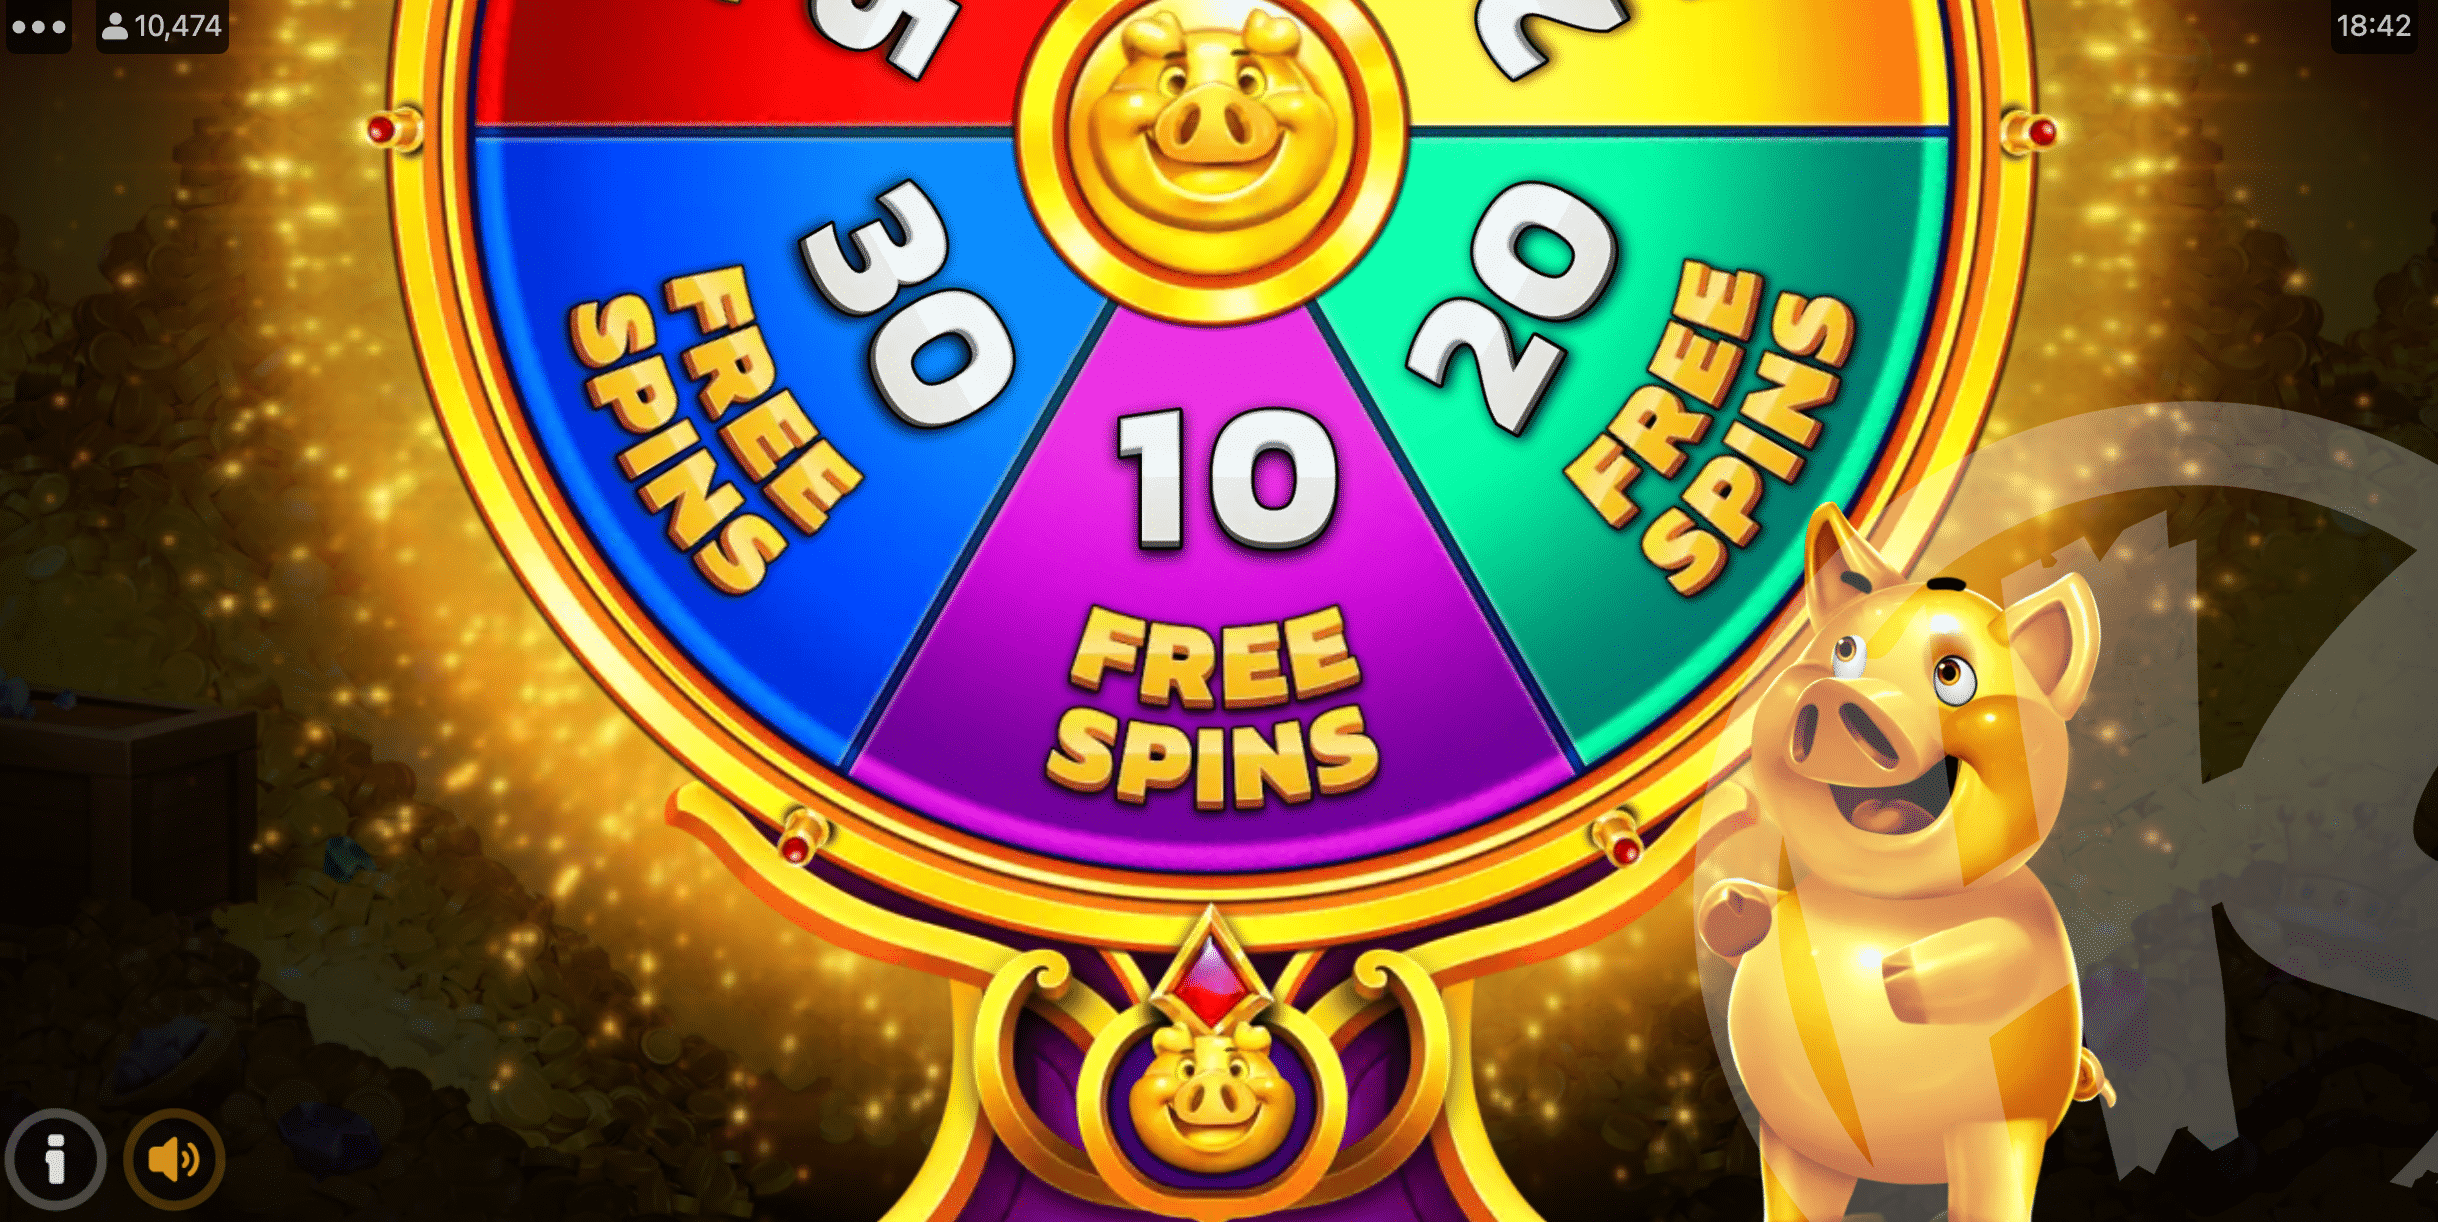 Spin the Free Spins Wheel to Trigger up to 30 Free Spins